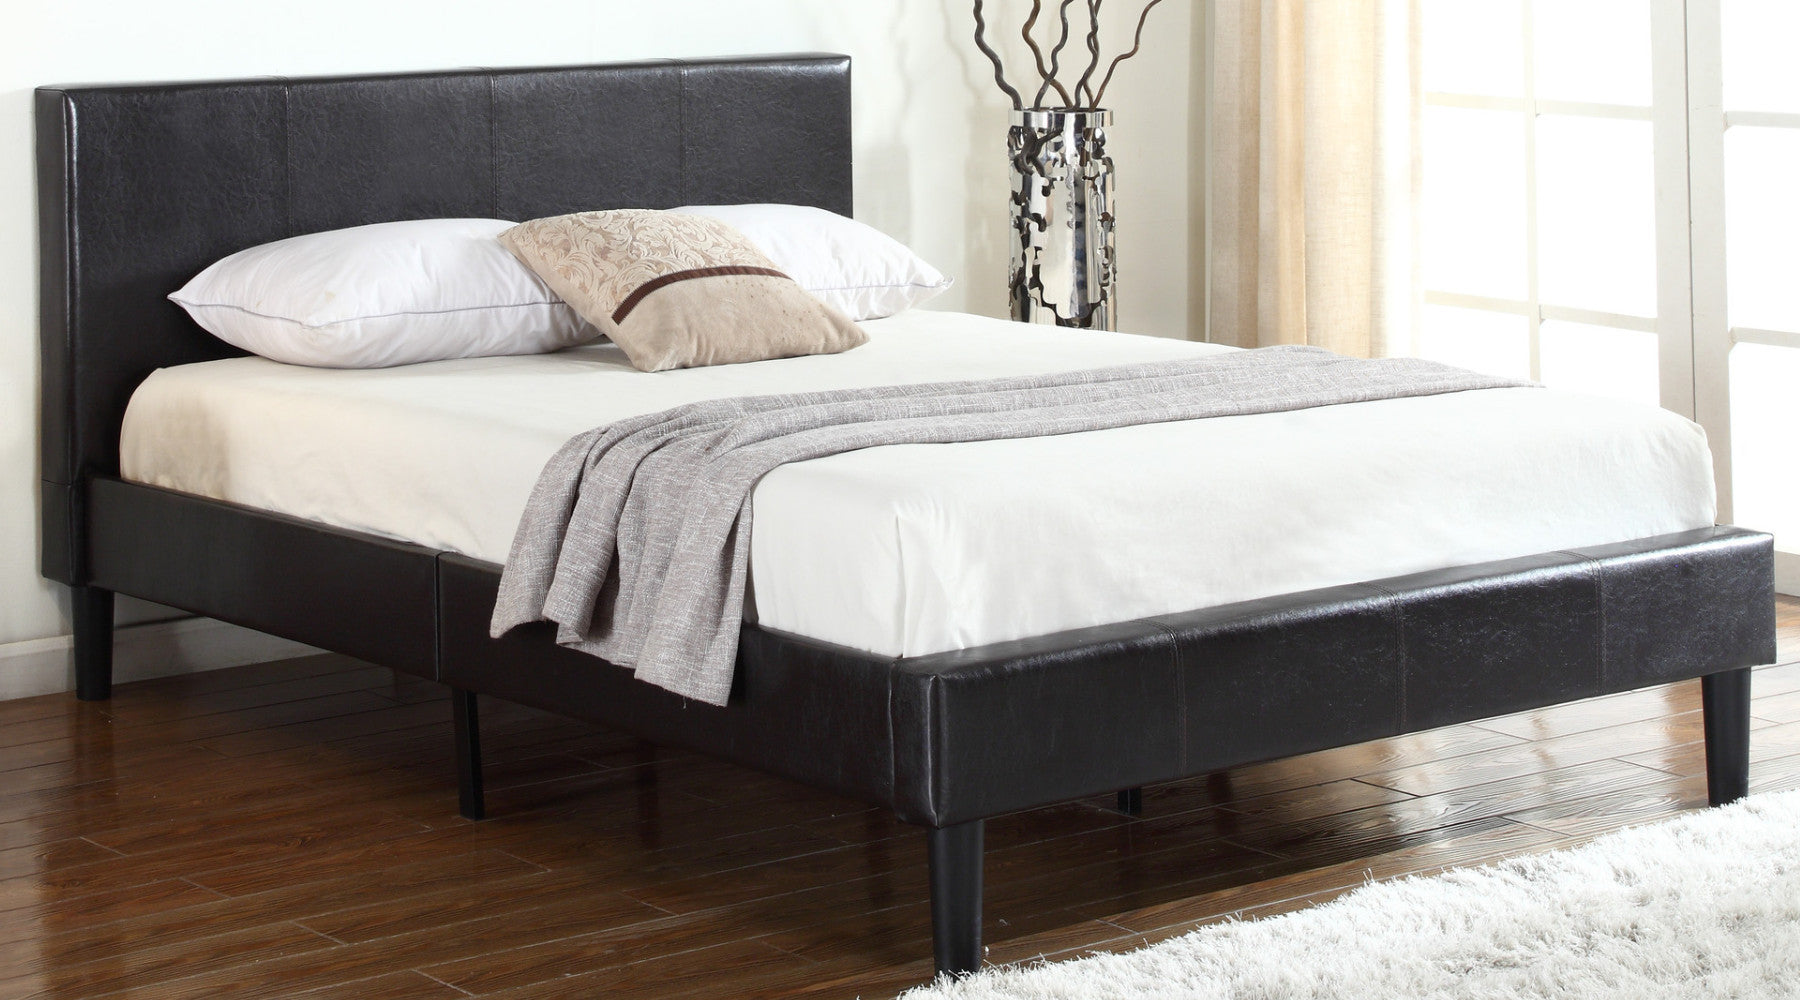 sofa mania affordable modern bed frames online sofamania